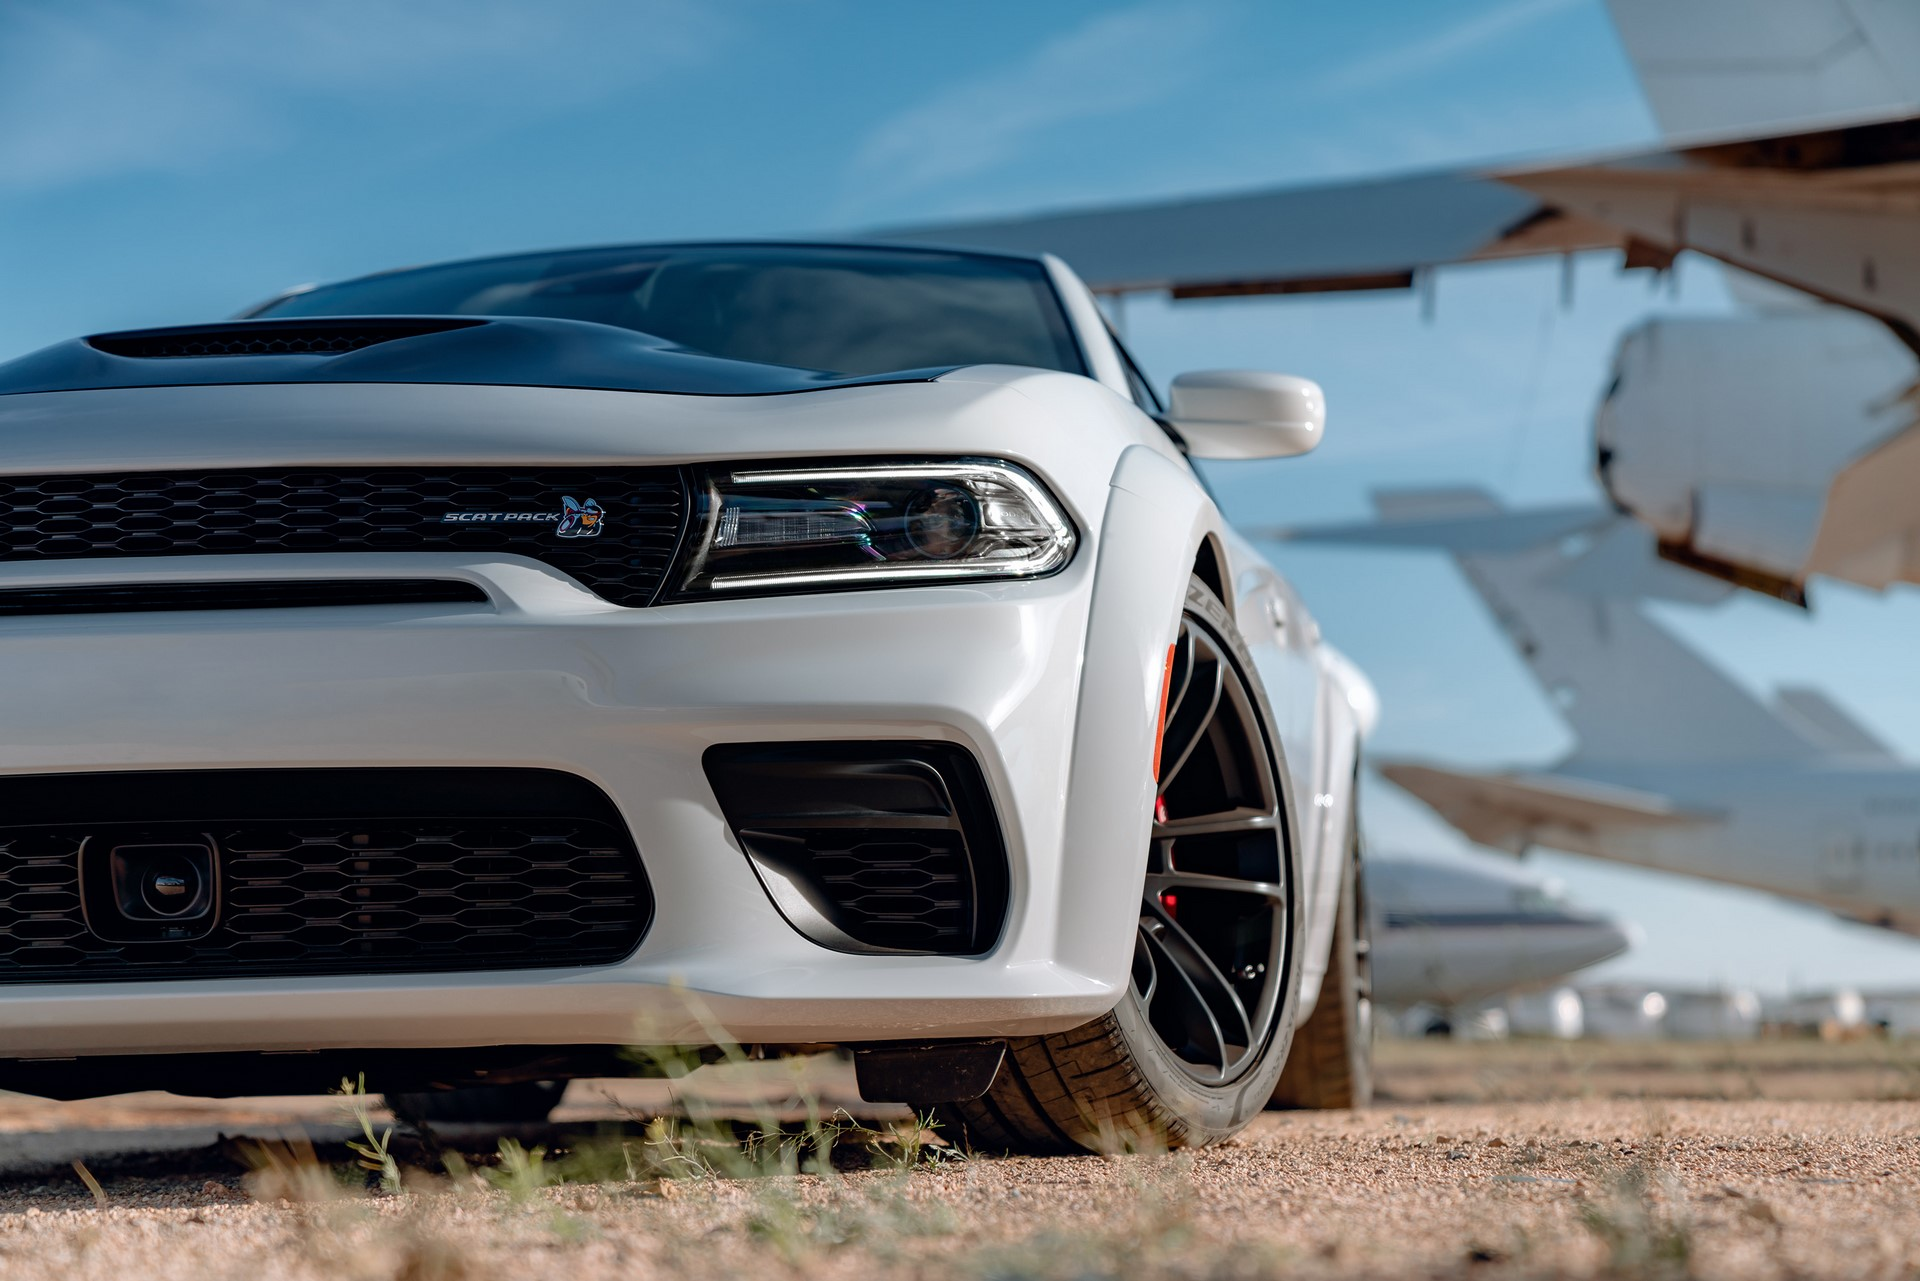 Newly designed front fascia on the 2020 Dodge Charger Scat Pack Widebody features a new mail slot grille opening designed for maximum air flow